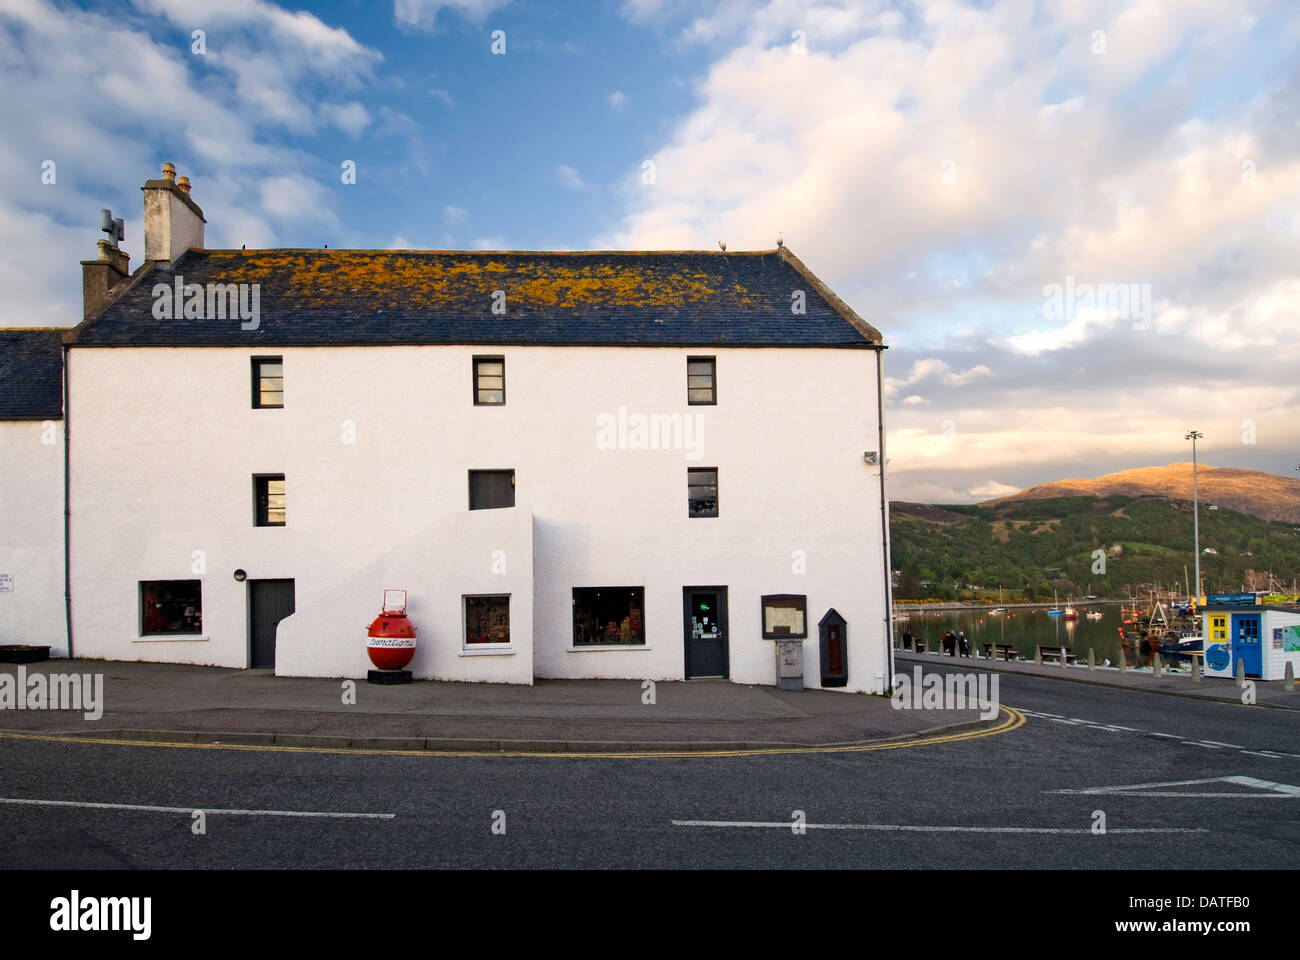 Street view in small town of Ullapool. Highlands, Scotland - Stock Image